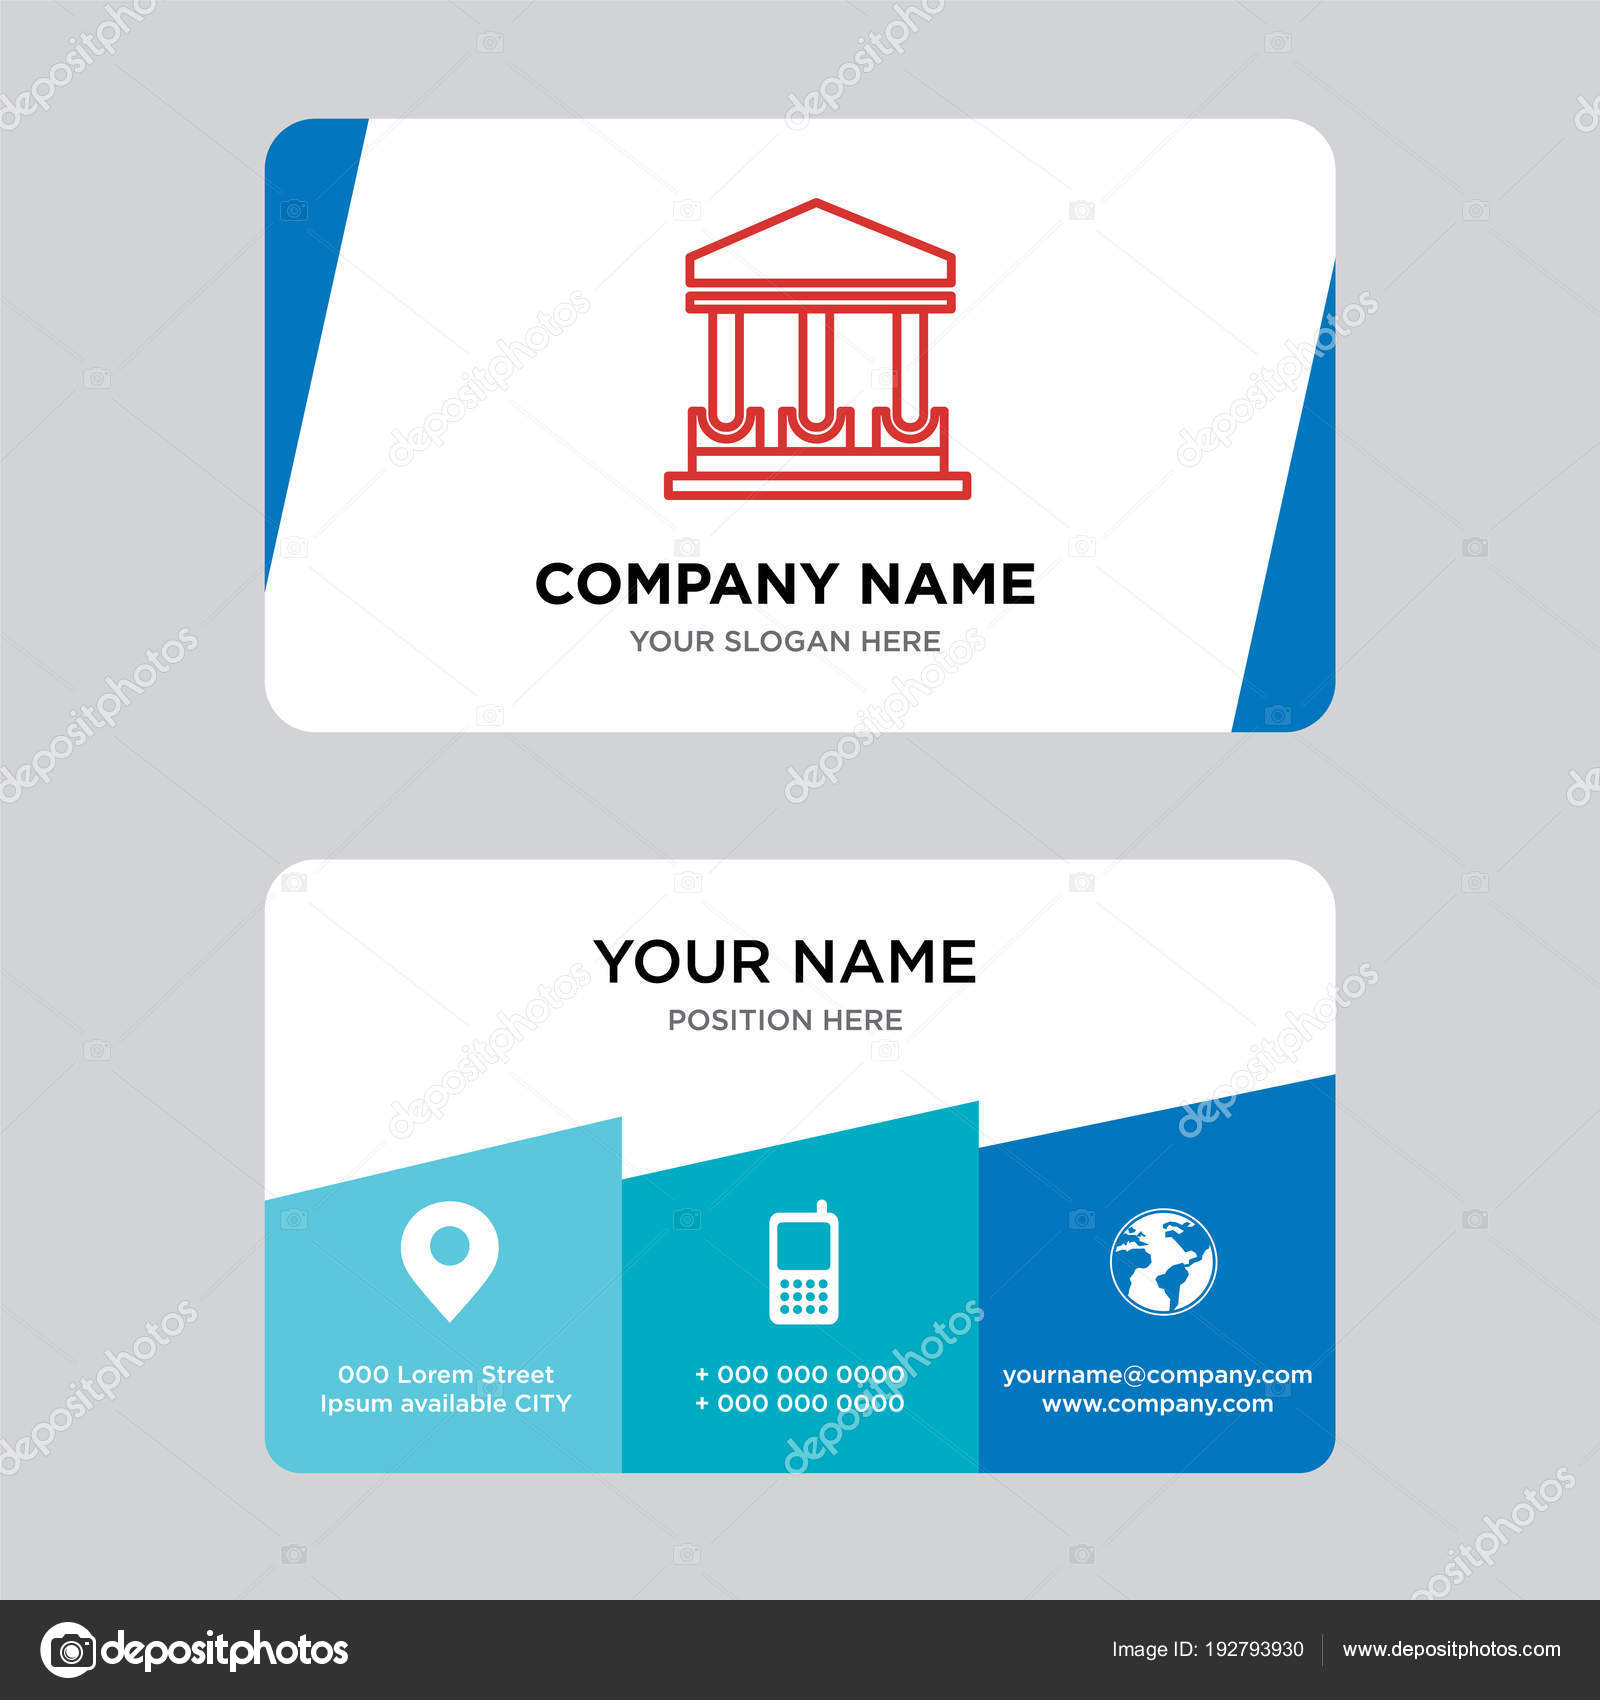 government building business card design template — Stock Vector ...